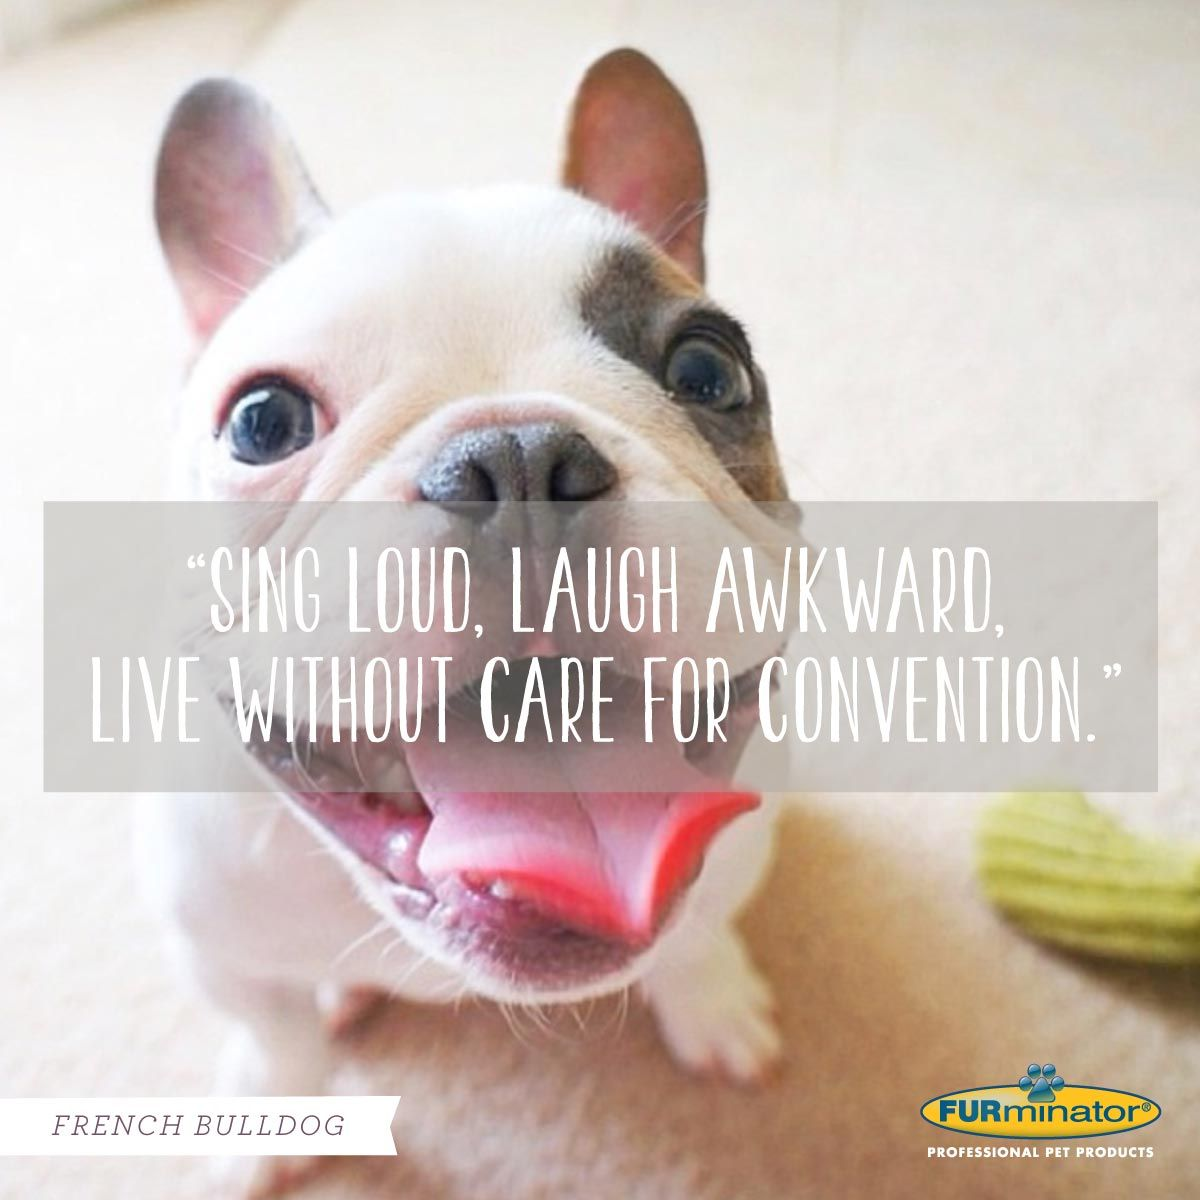 Bulldog Quotes French Bulldog Motto Sing Loud Lough Awkward Live Without Care